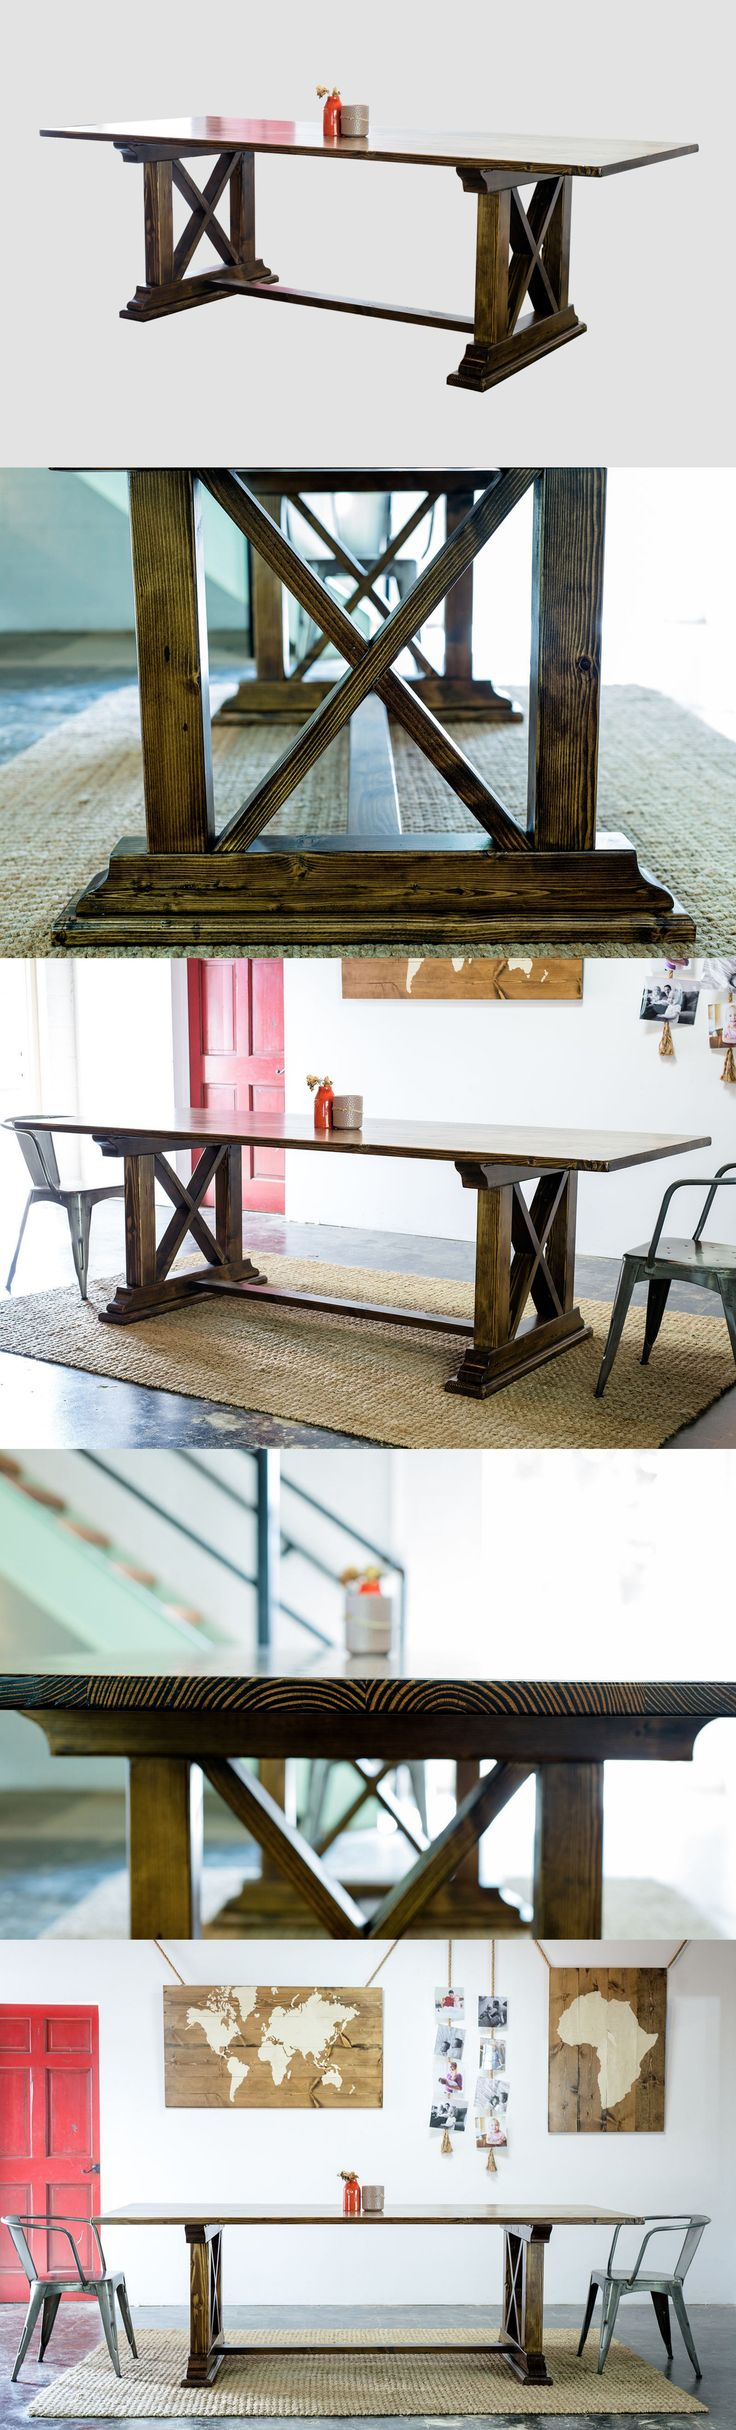 A beautifully handcrafted top supported by a classic trestle base, our Holton Table is a lovely gathering place for friends and family.